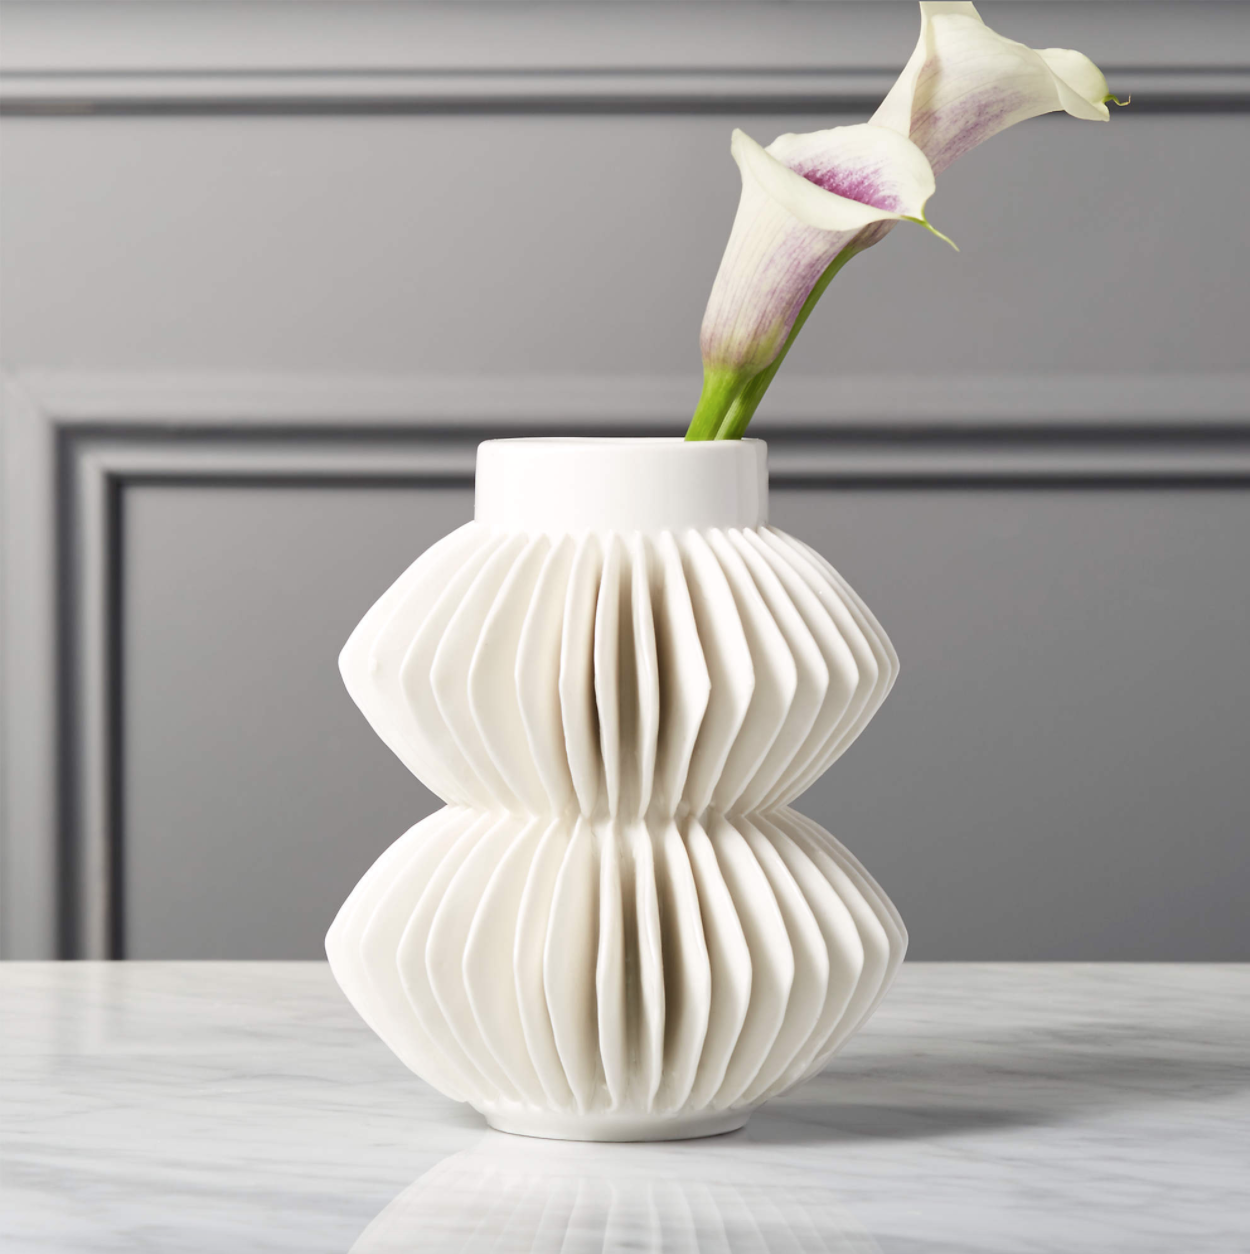 A white vase with ceramic, fan-like fins sits on a table. Two calla lilies are inside.